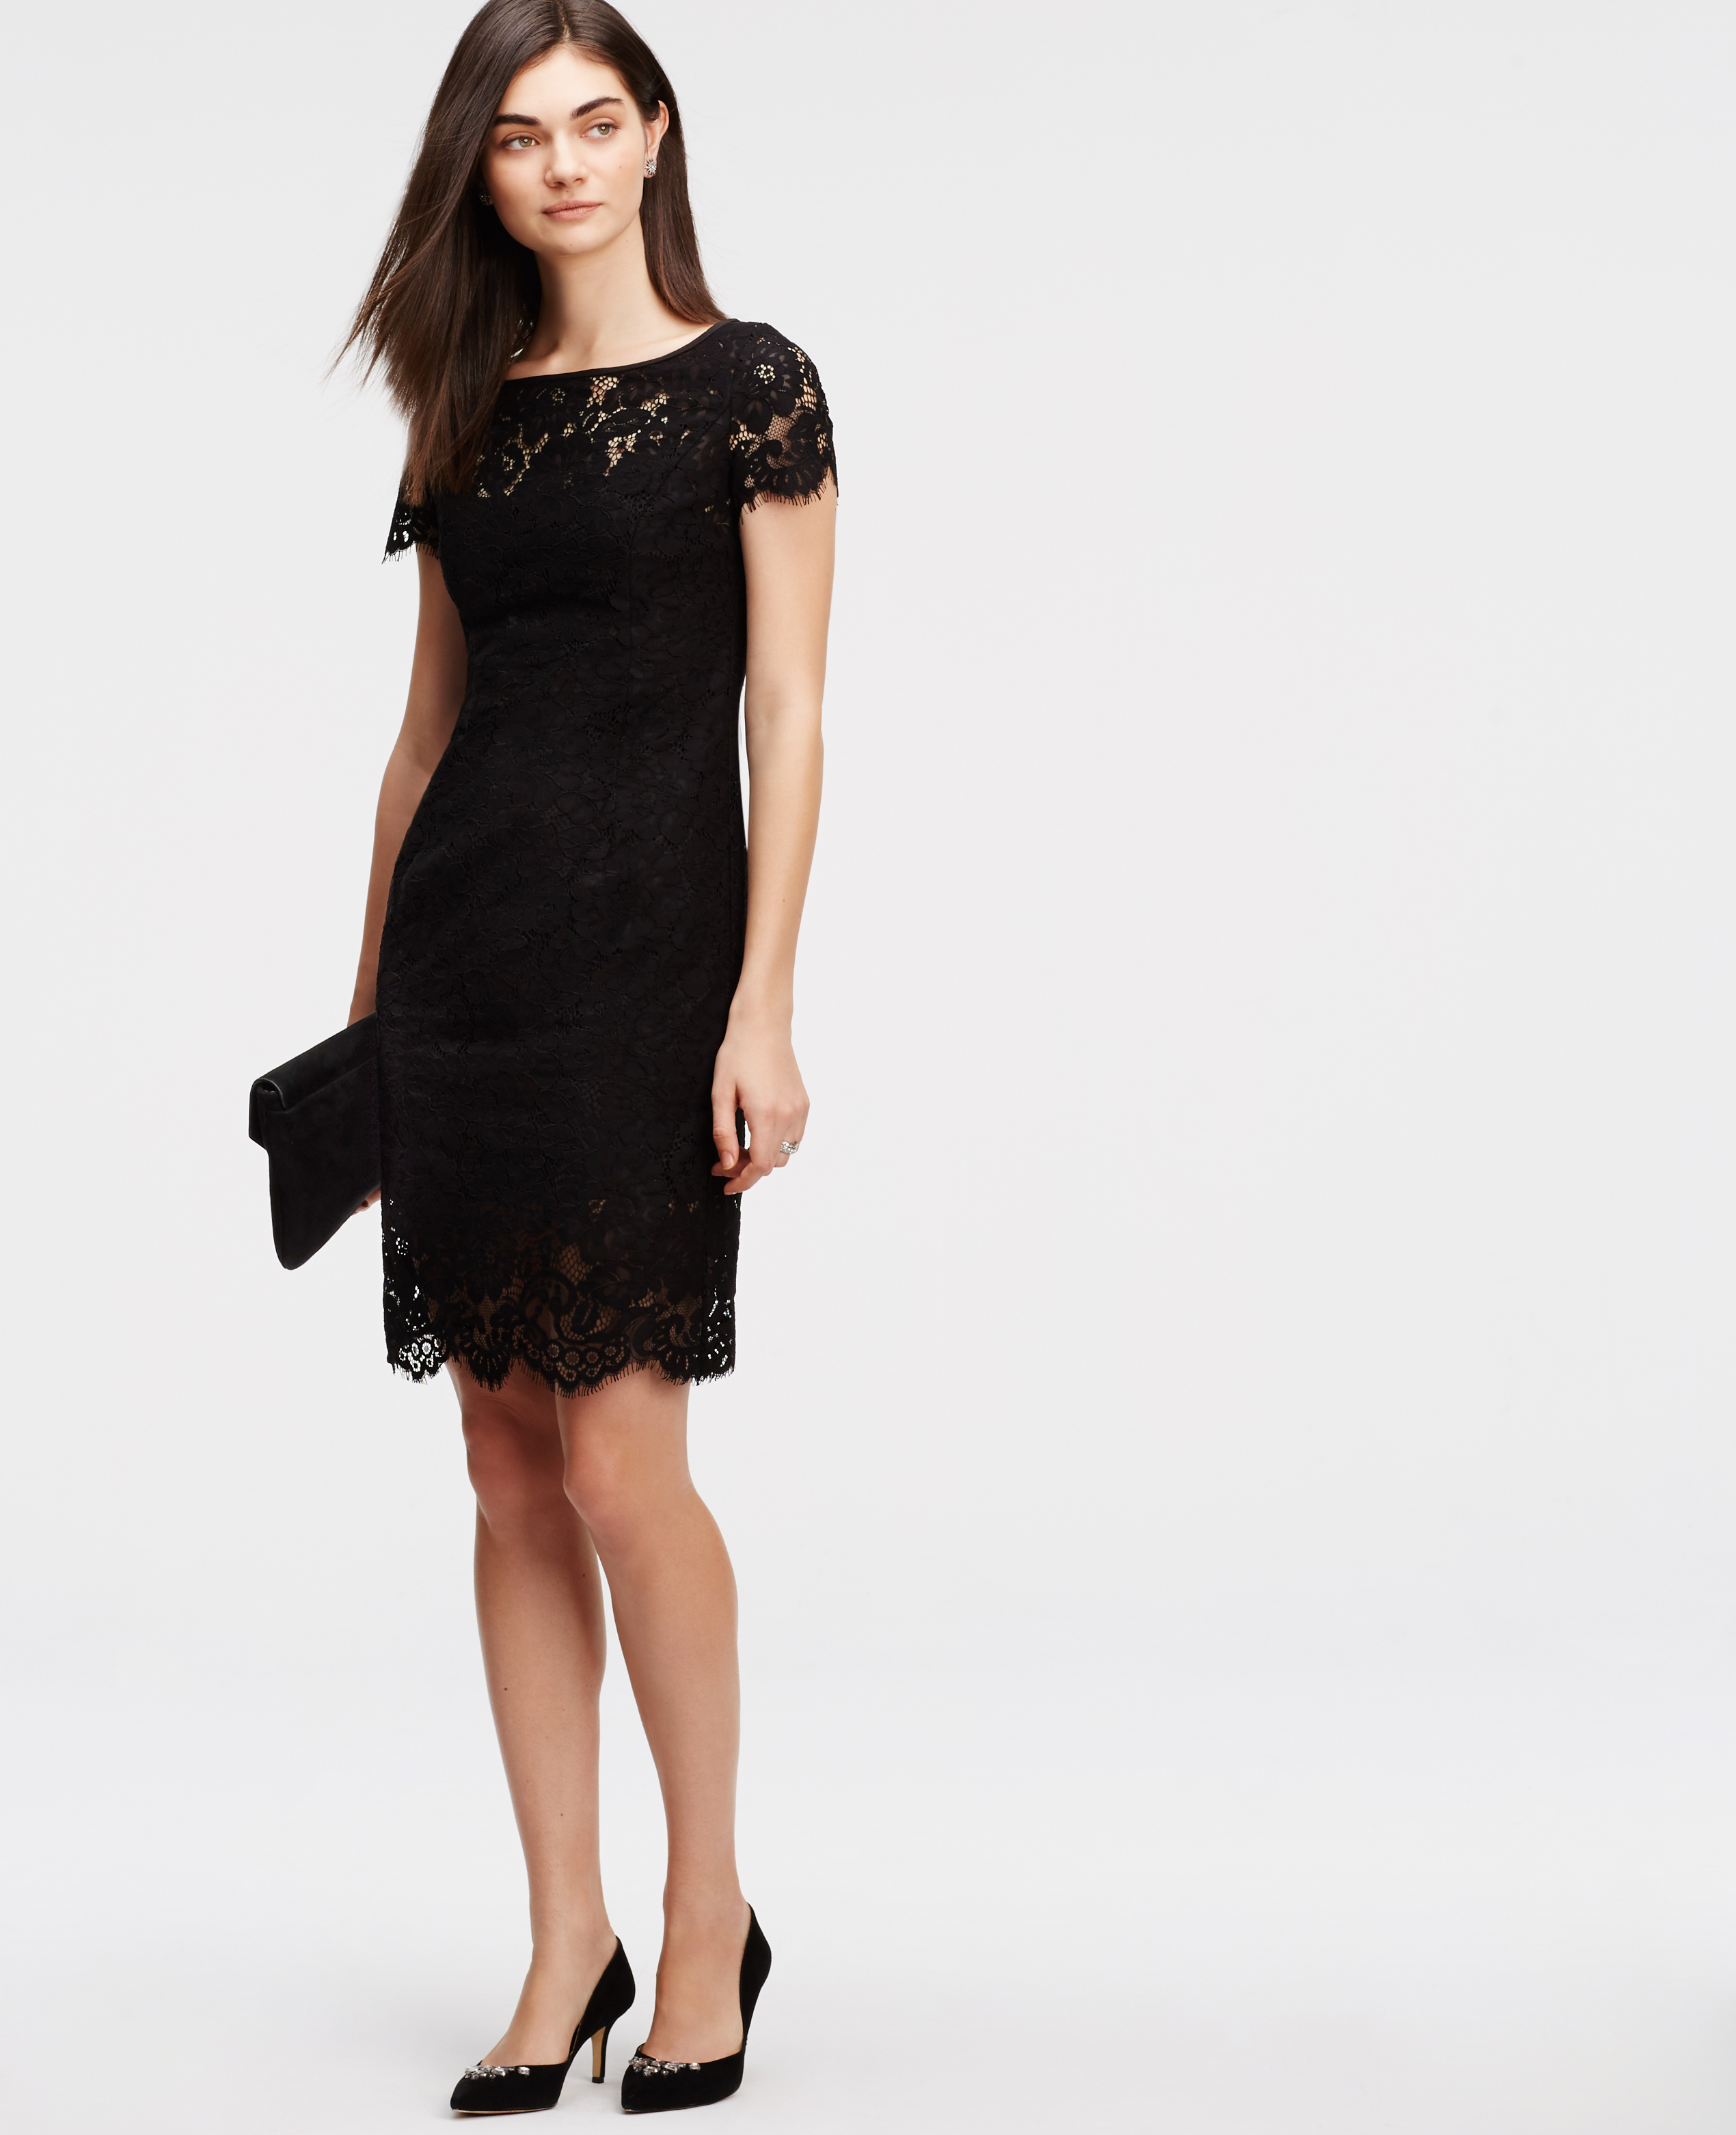 Lyst - Ann Taylor Petite Lace Sheath Dress in Black